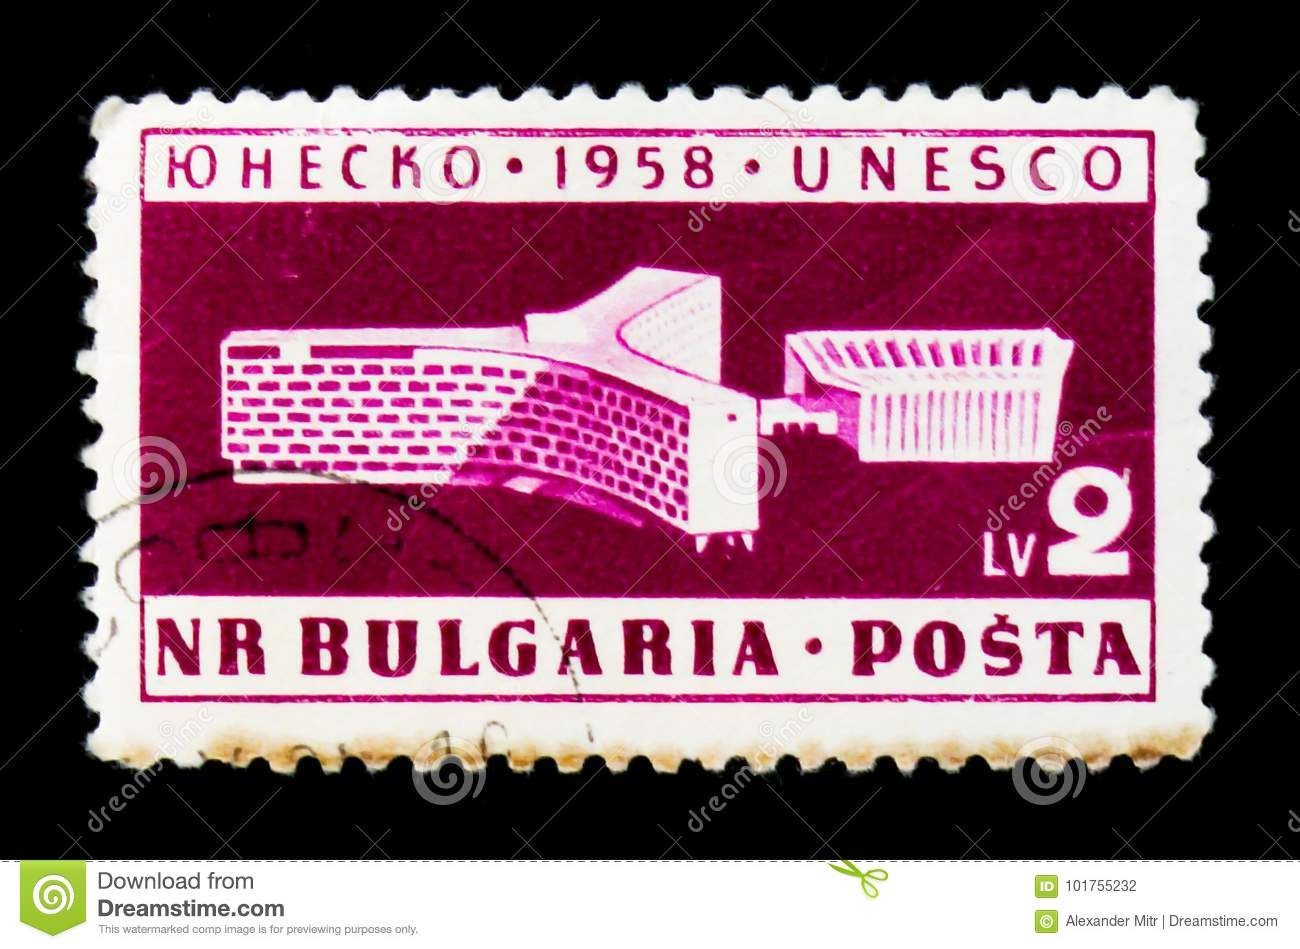 Bulgaria Postage Stamp Shows UNESCO Office Building, Paris